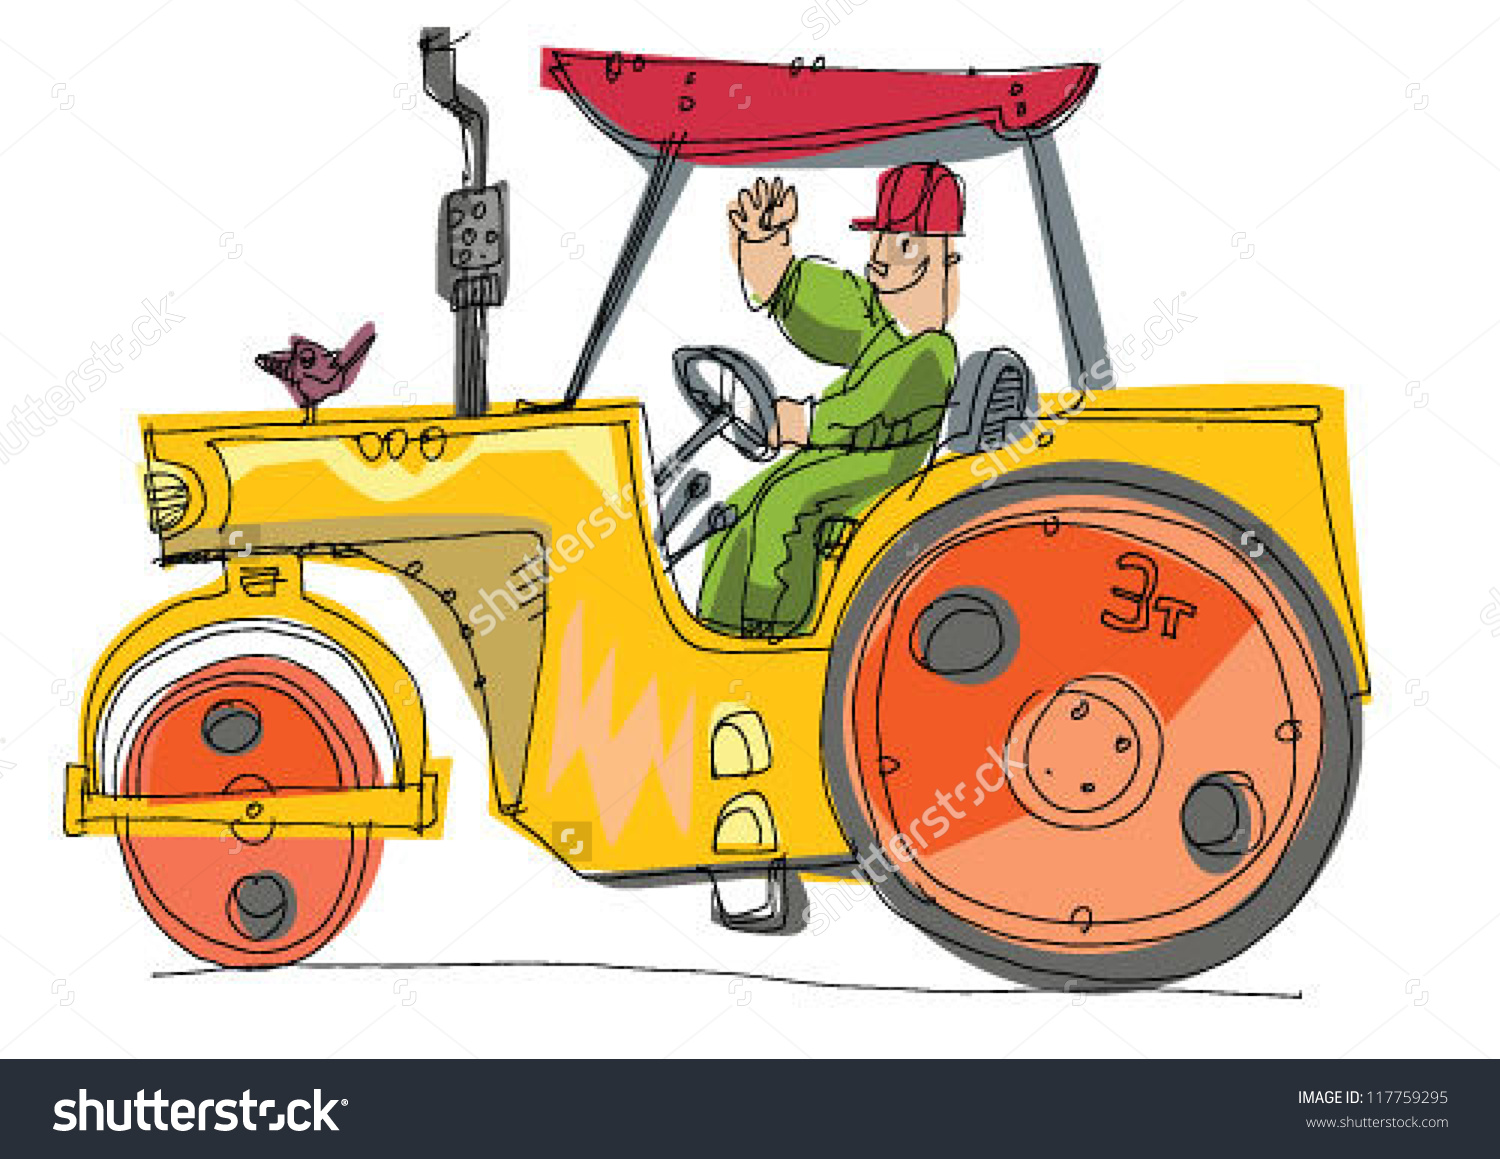 Road Roller Vector Cartoon Stock Vector 117759295.